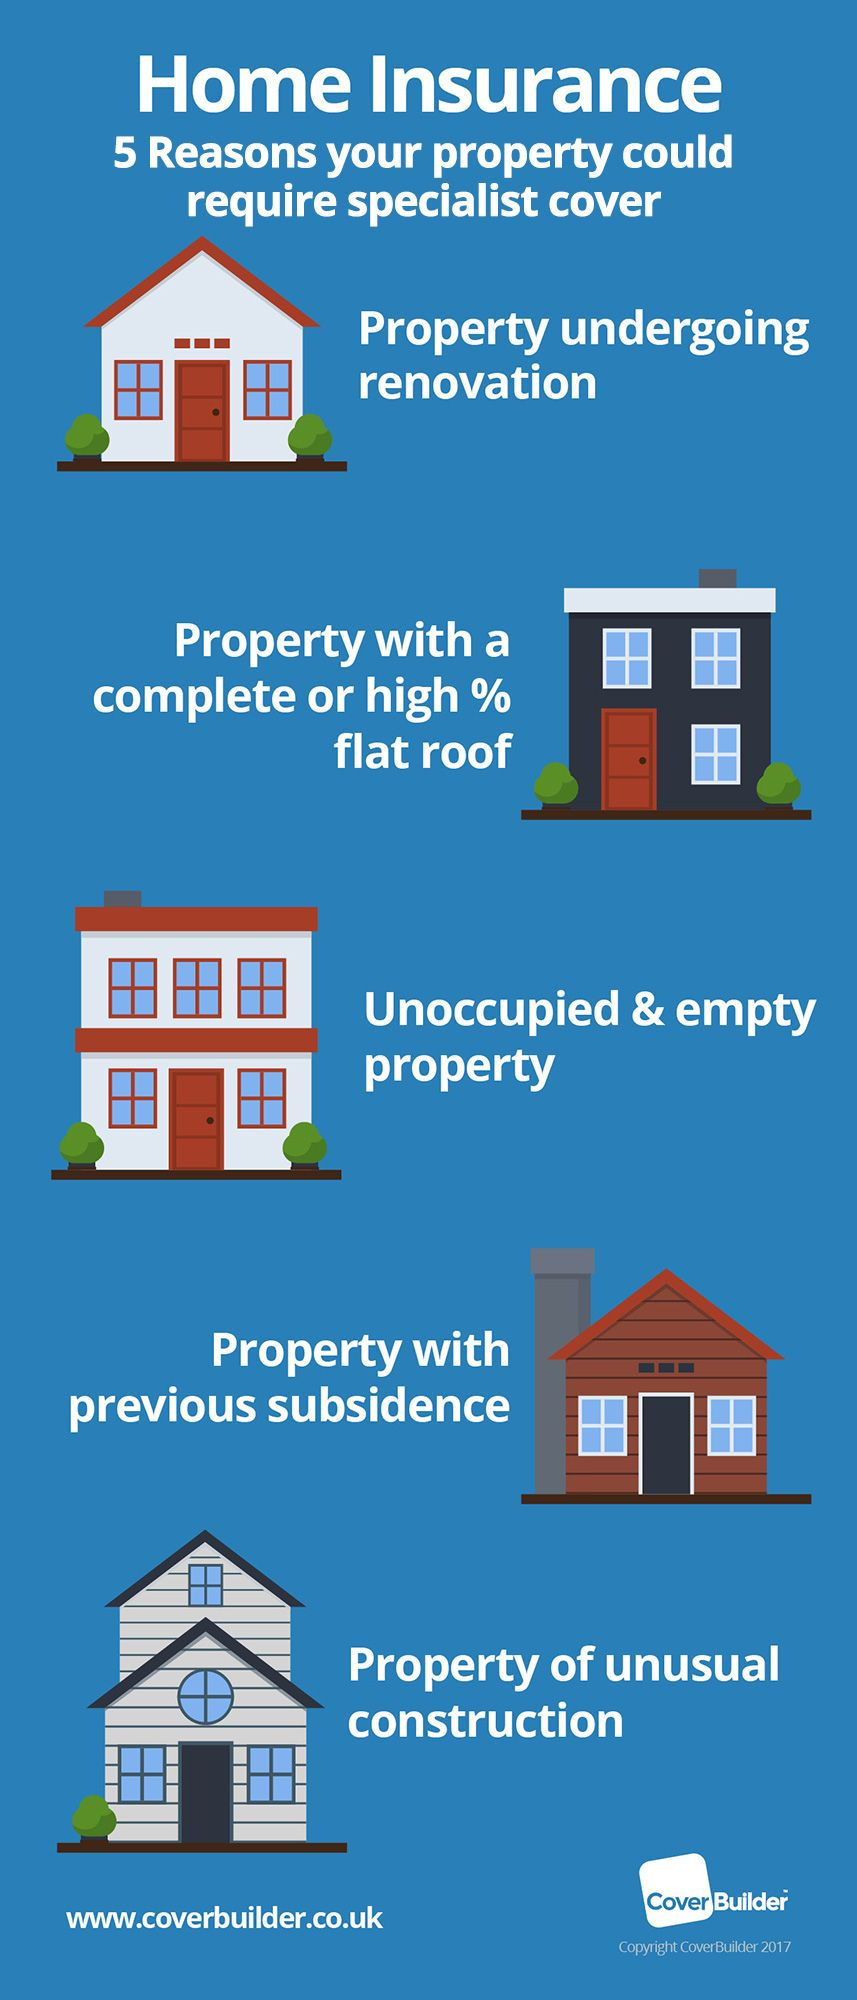 NonStandard Home Insurance (With images) Home insurance